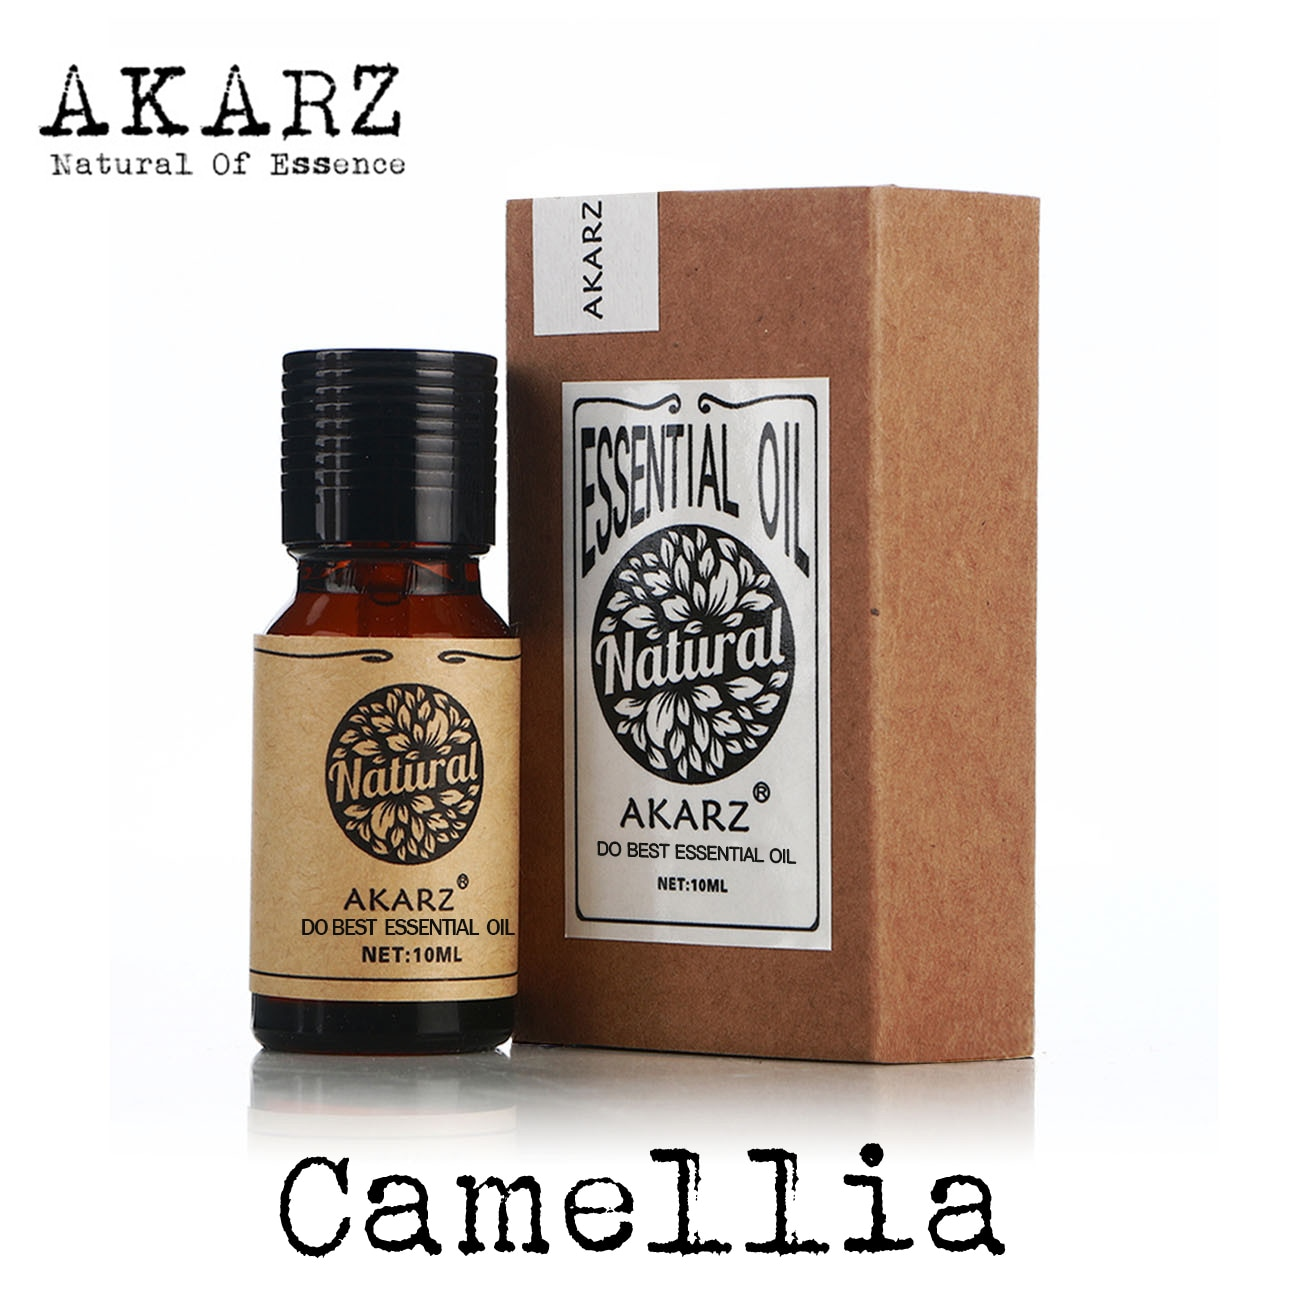 AKARZ Famous brand skin care camellia seeds oil beauty in eliminating stretch marks shiny skin benef